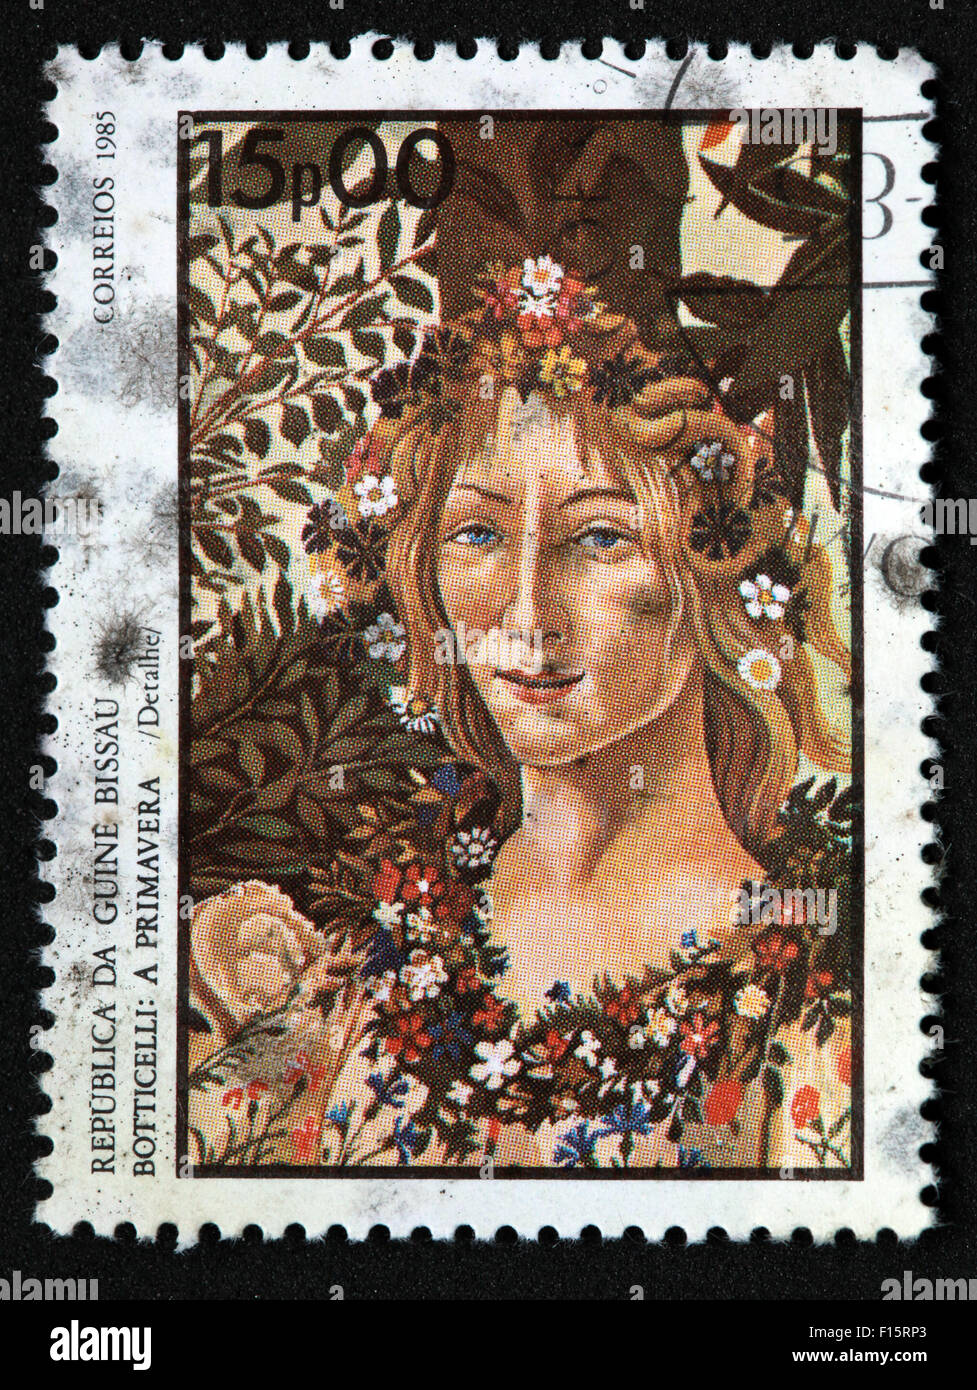 Republica Da Guine Bissau Botticelli a Primavera Spring in Correios 1985 15p00 girl woman flowers in hair stamp - Stock Image